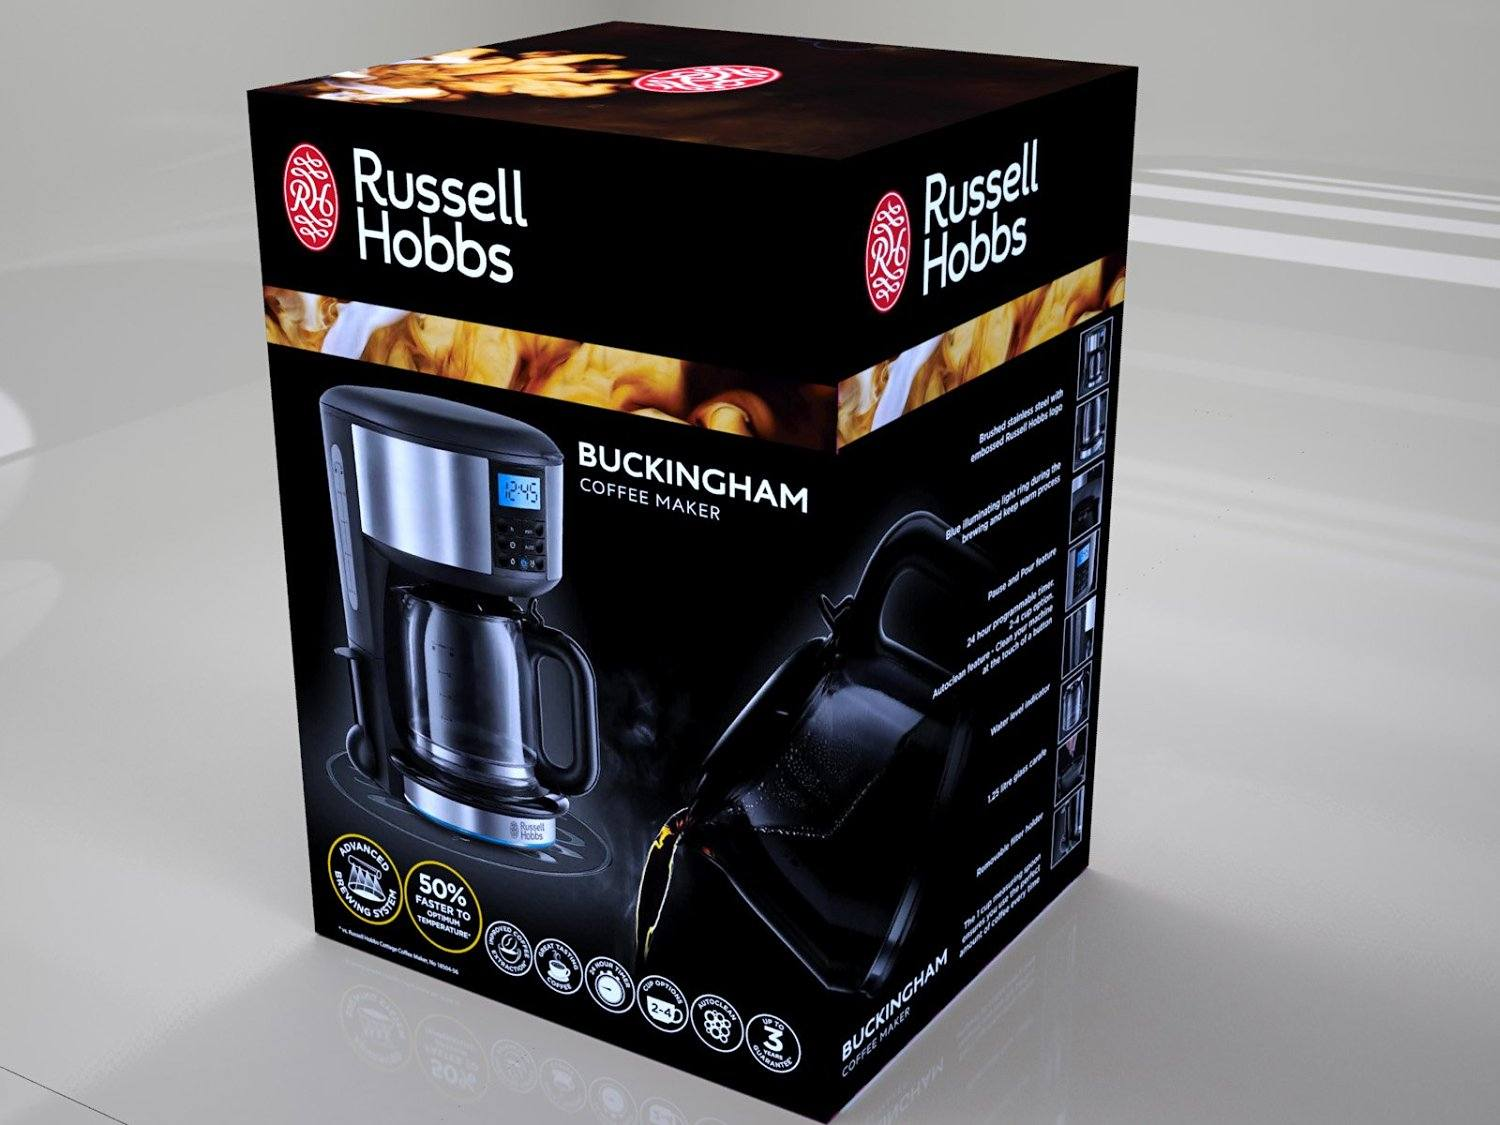 russell-hobbs-buckingham-coffee-maker-review